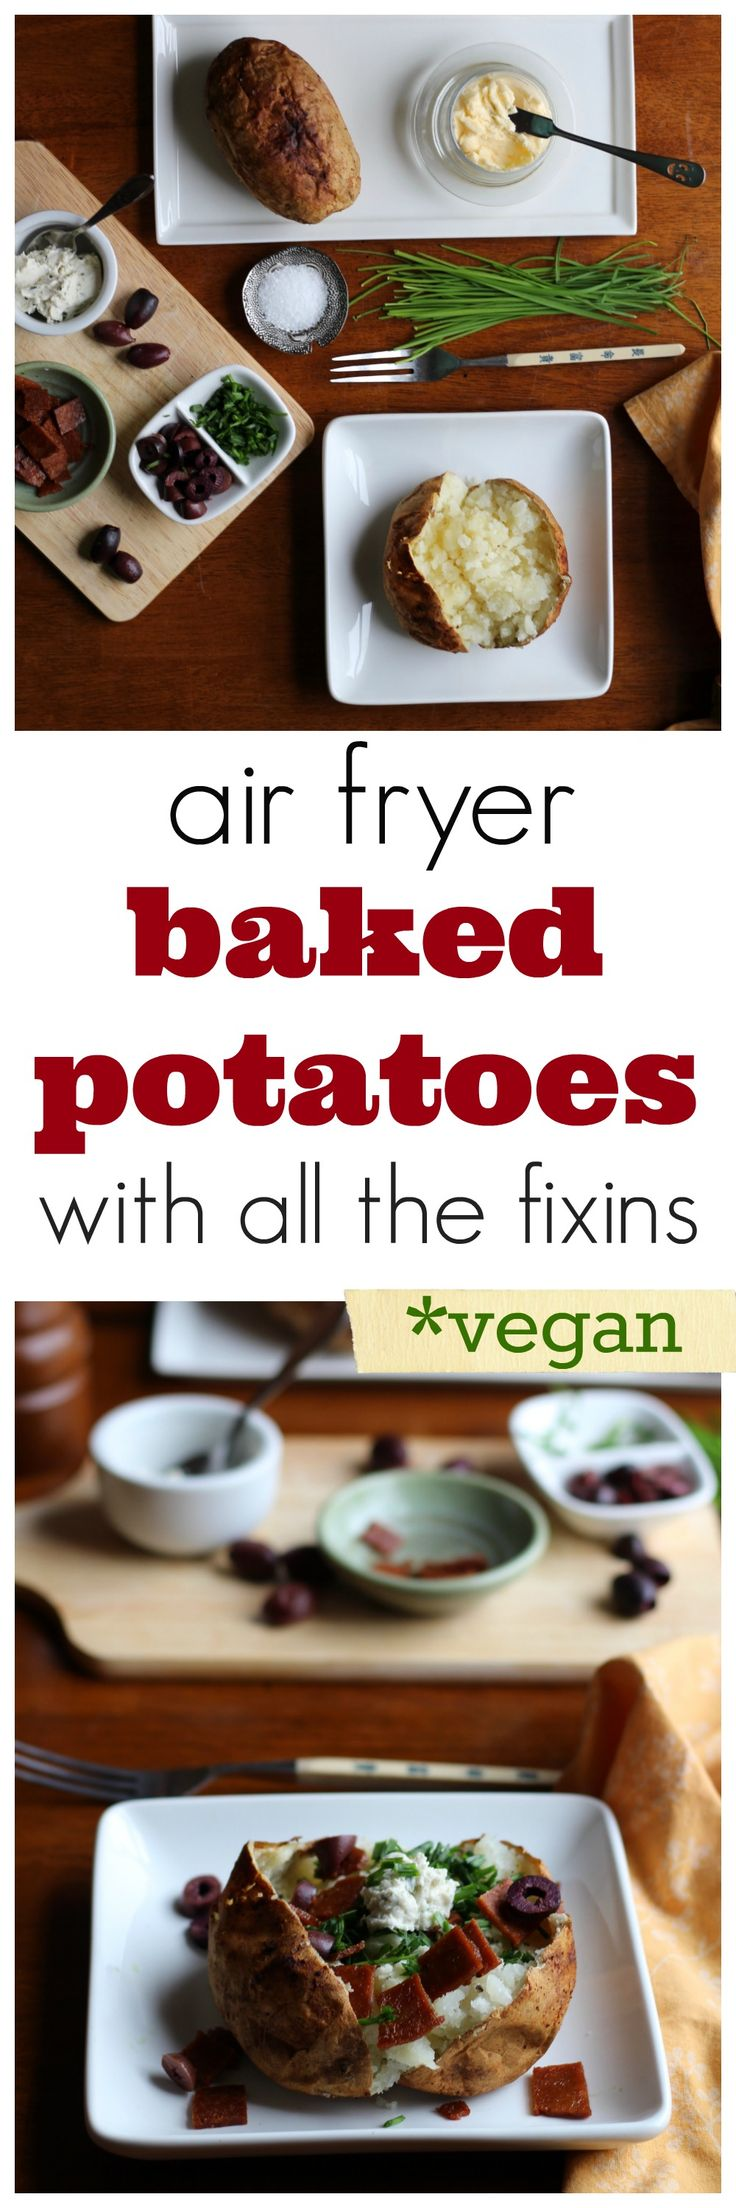 Get ready for the best baked potato of your life - cooked in the air fryer! Crisp peel, pillowy center, and all of your favorite vegan fixins. | cadryskitchen.com